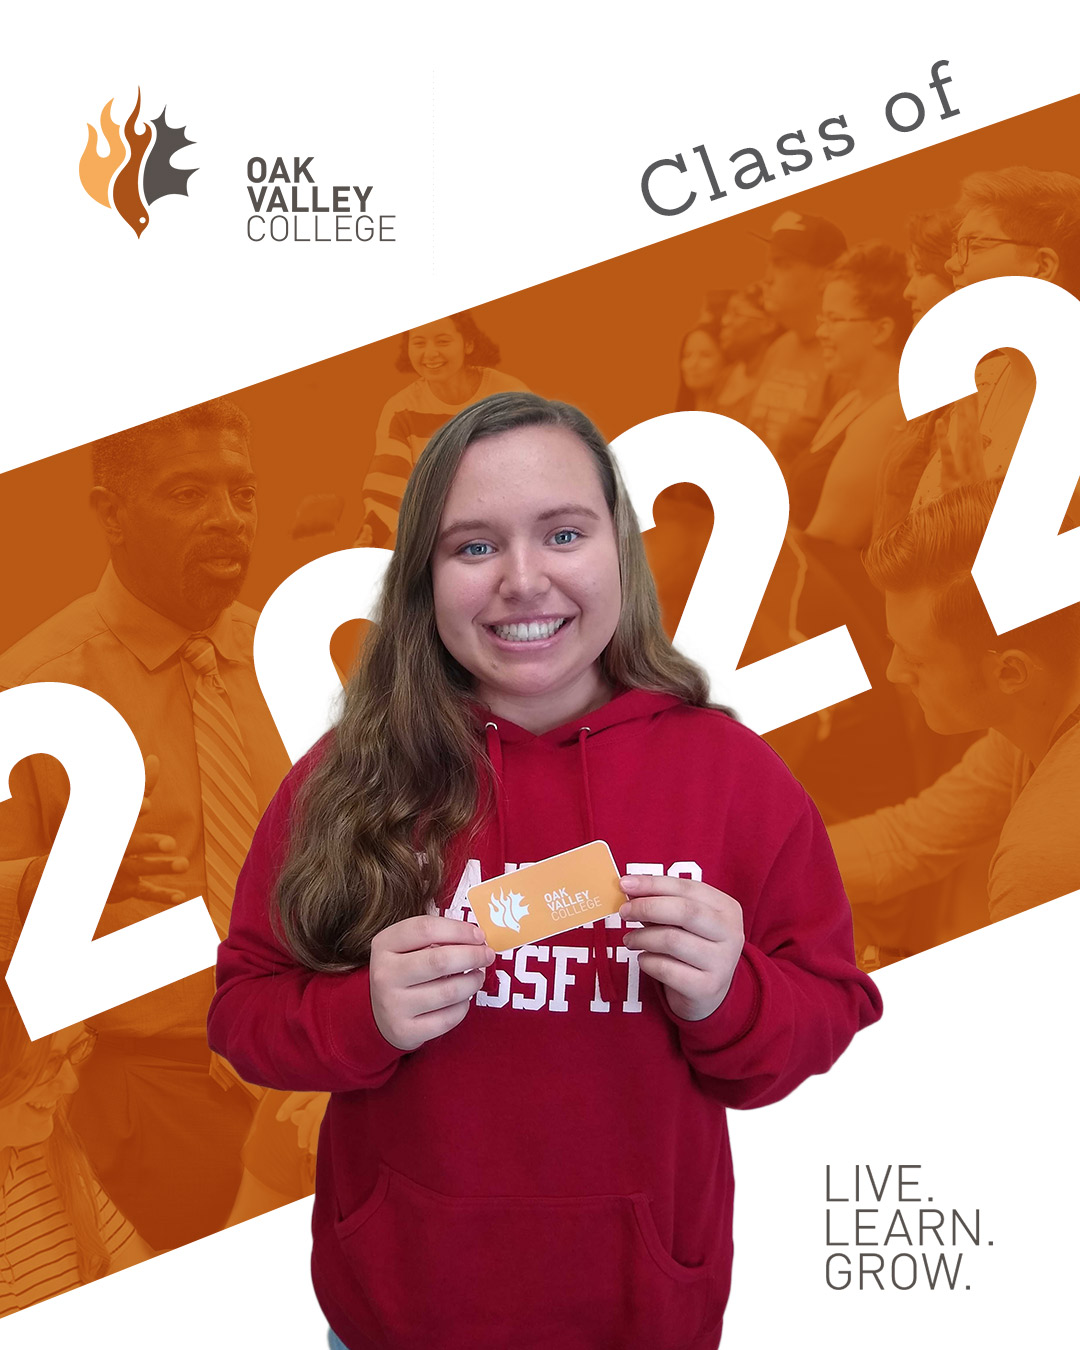 Elli is one of 32 students who enrolled as freshmen in the fall of 2019.